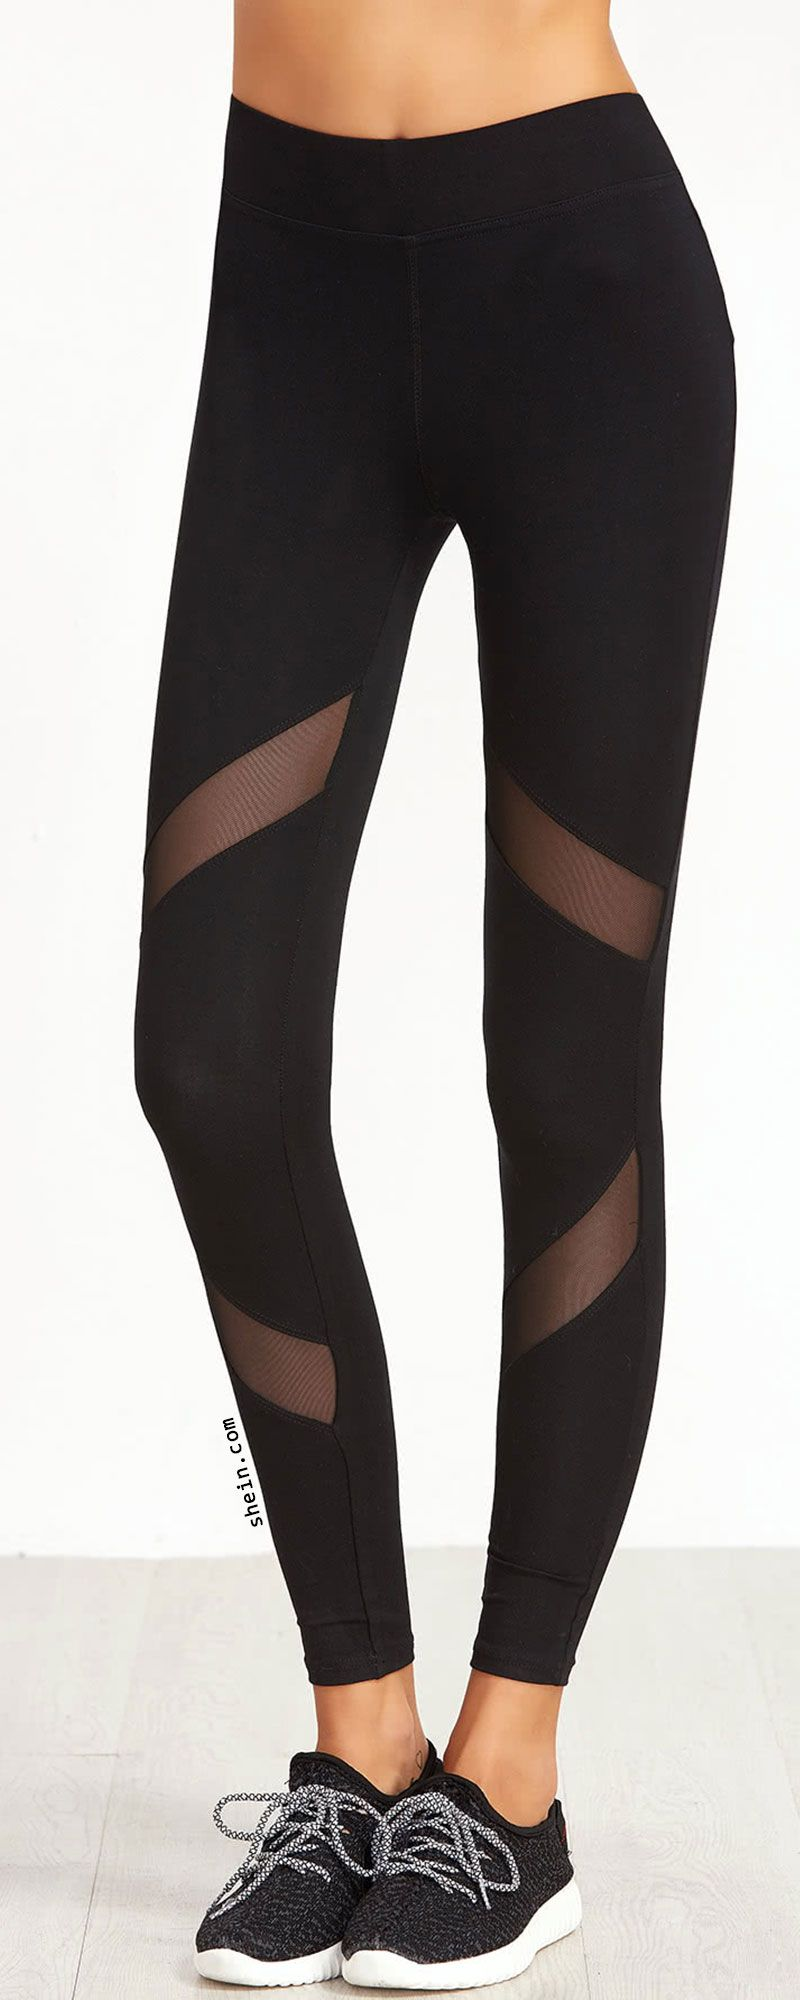 3e929f5339636 Mesh Insert Skinny Leggings | Love to Wear | Mesh leggings, Tight ...